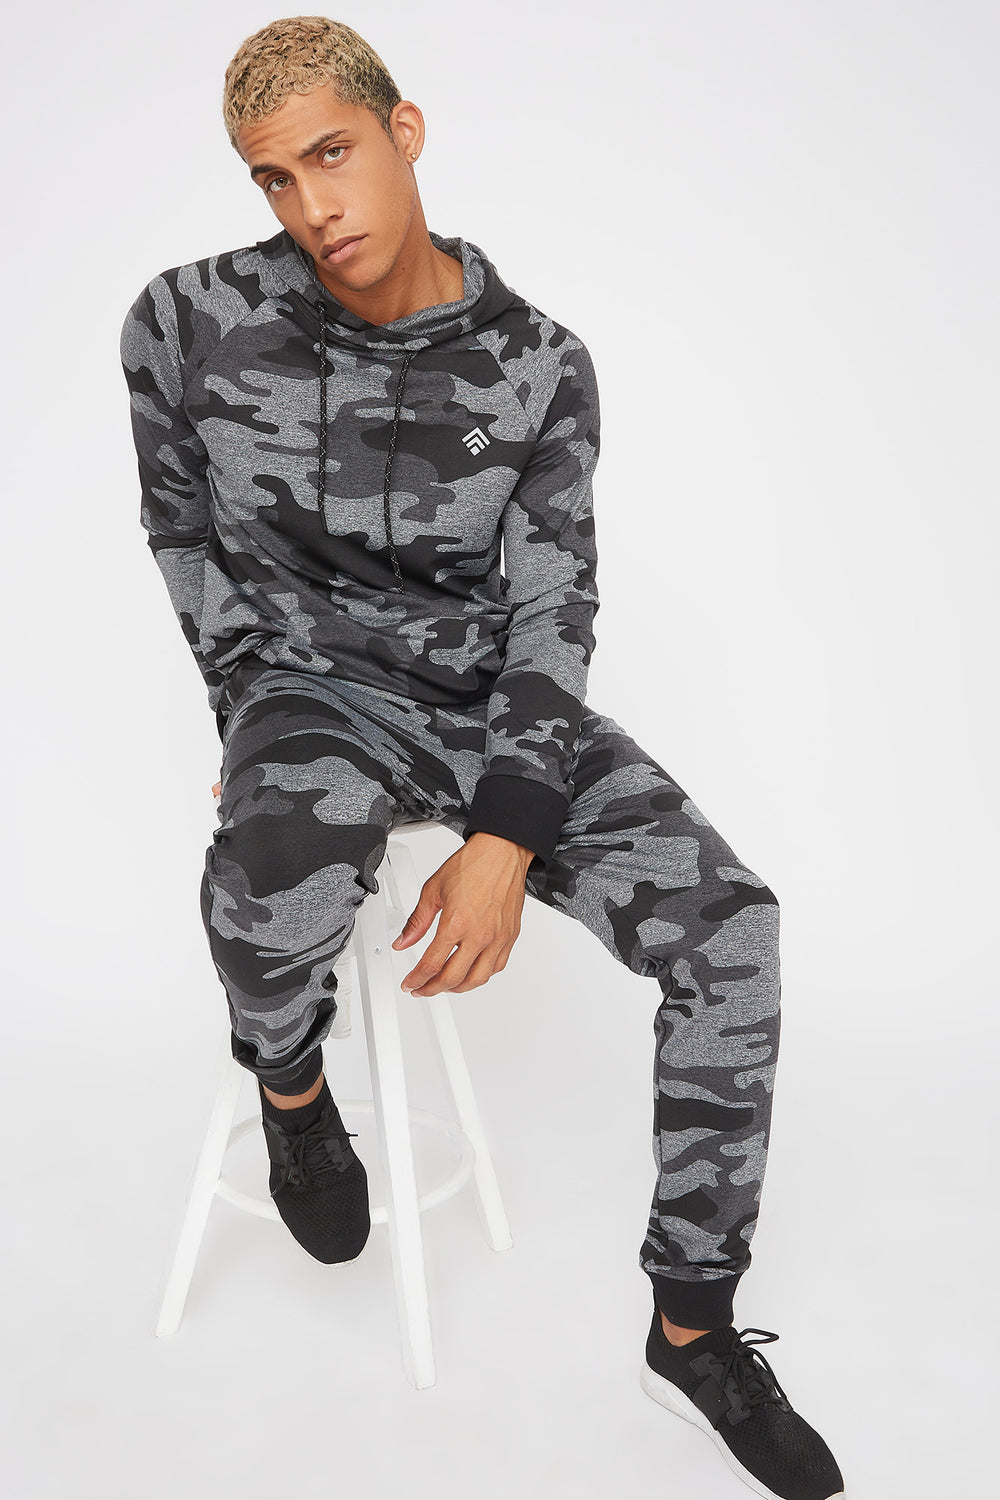 Active Camo Jogger Black with White